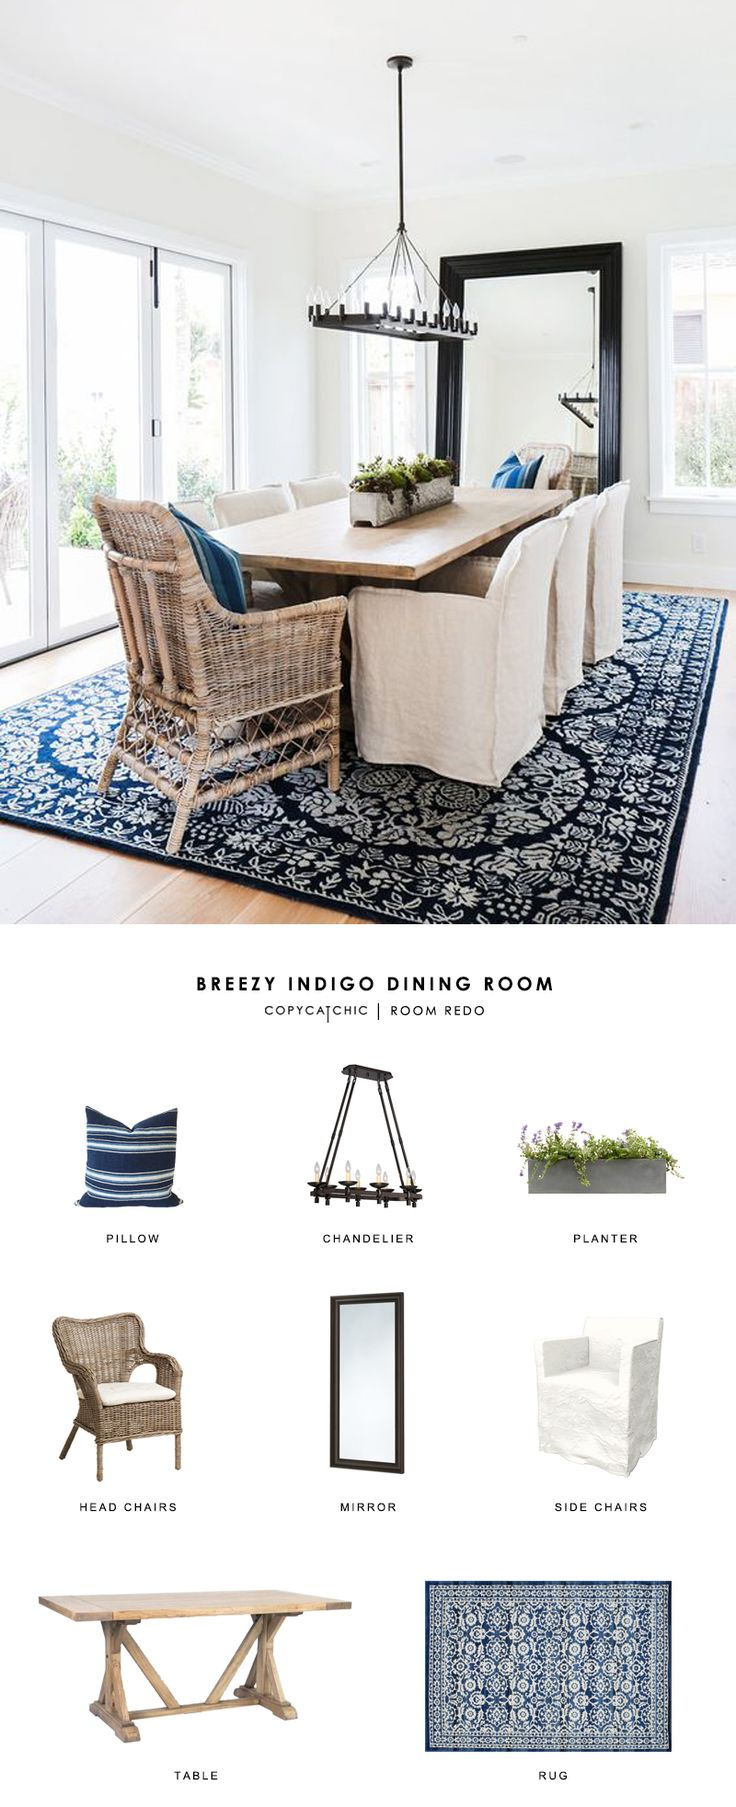 A breezy indigo dining room by Blackband Design gets recreated for less by copycatchic luxe living for less budget home decor and design